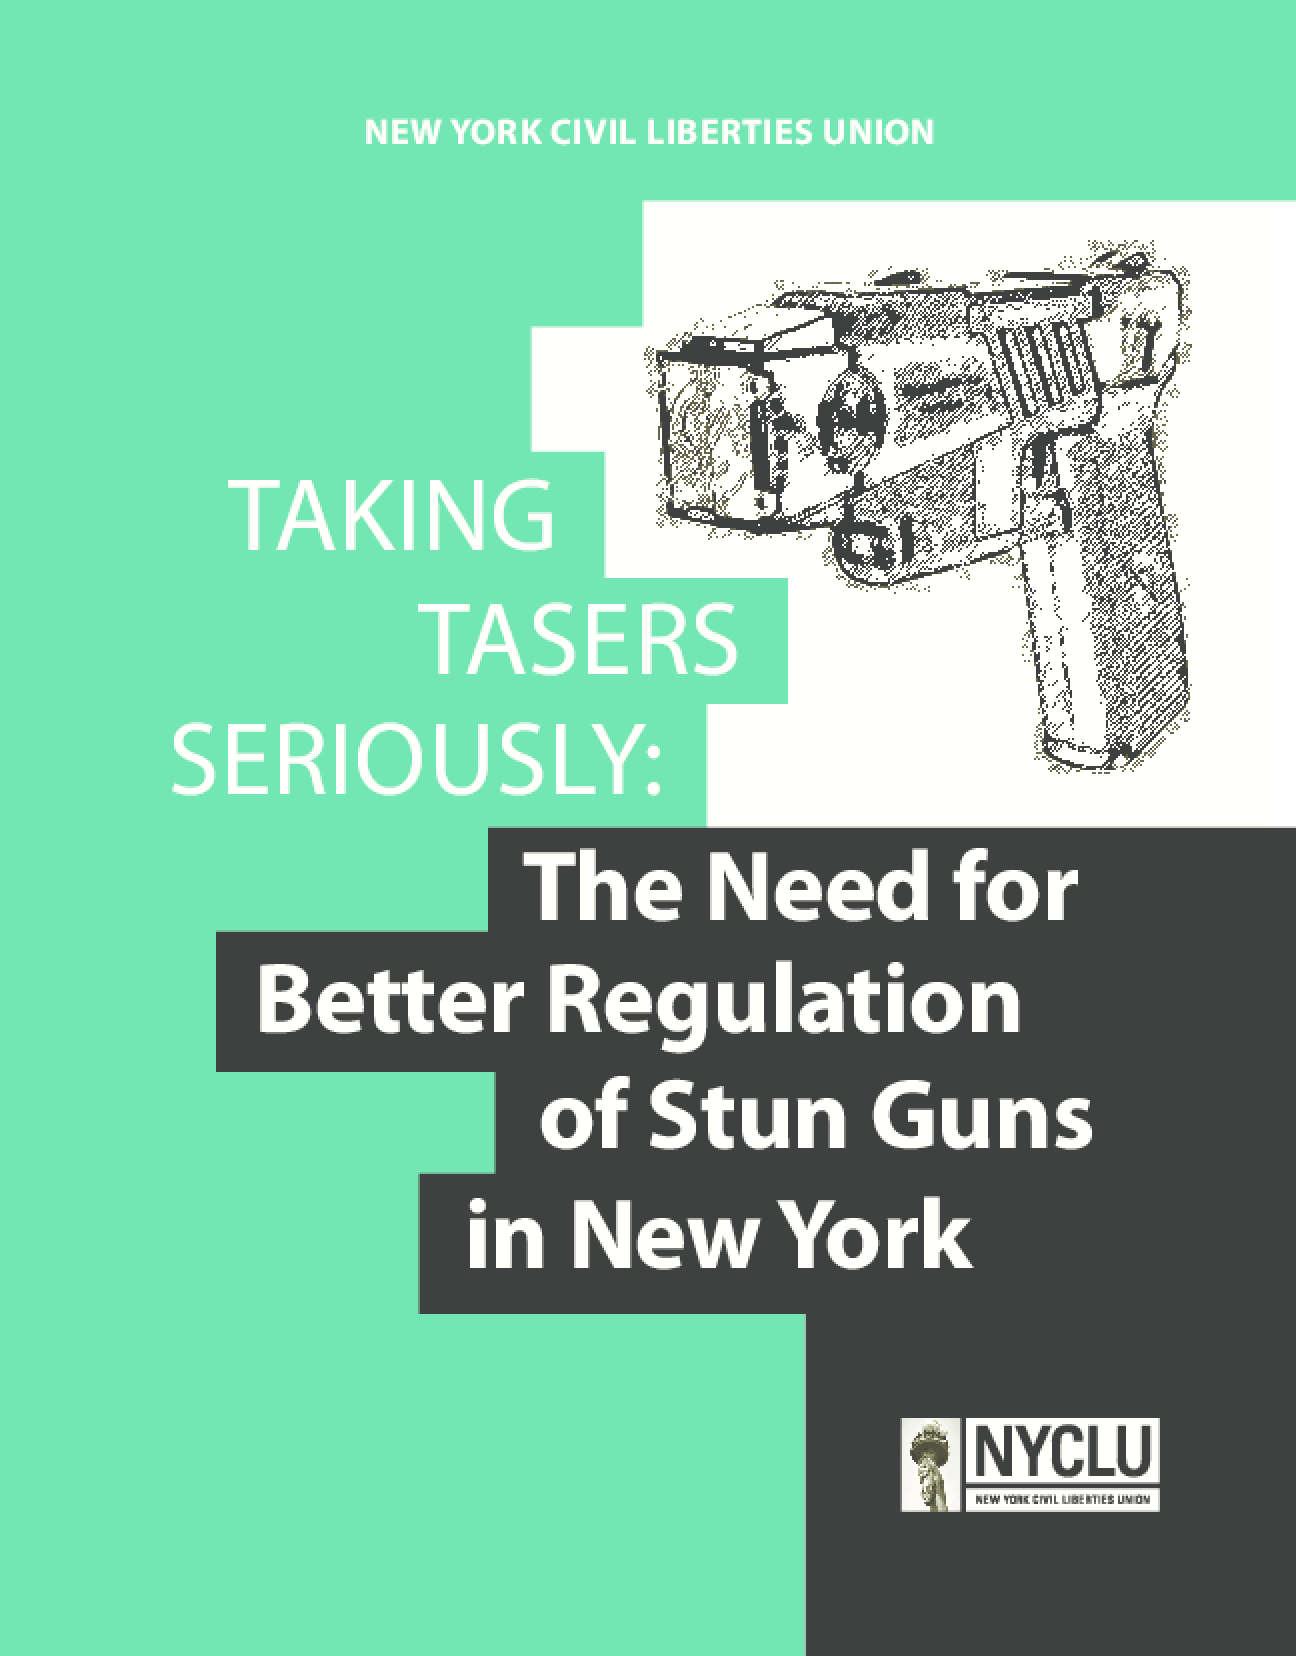 Taking Tasers Seriously: The Need for Better Regulation of Stun Guns in New York